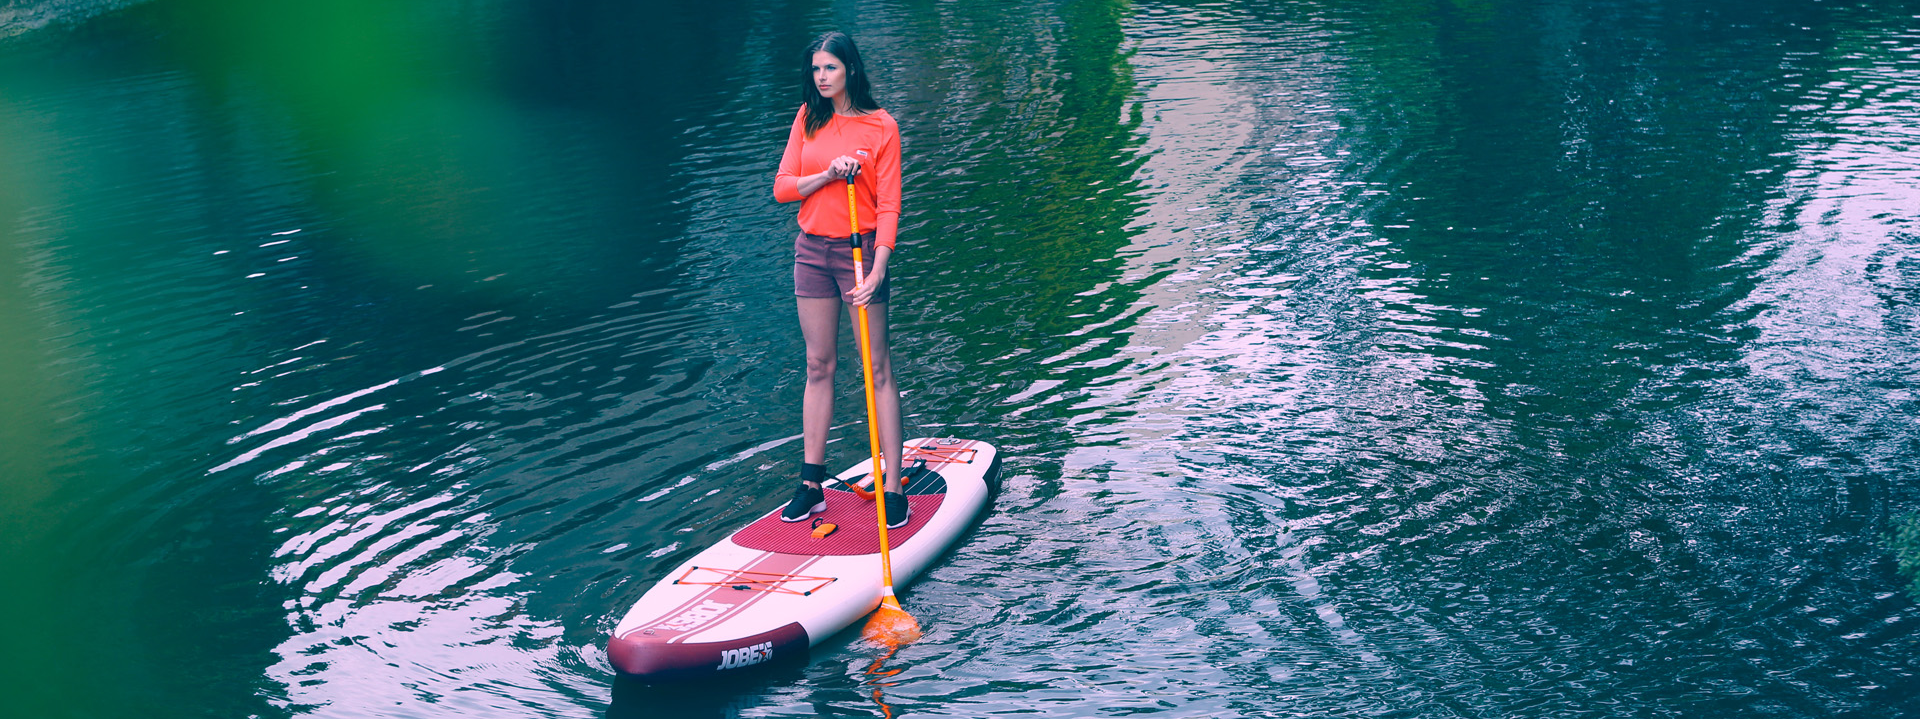 stand up paddle board kaufen kaufberater 2 stand up paddling berlin schlachtensee. Black Bedroom Furniture Sets. Home Design Ideas